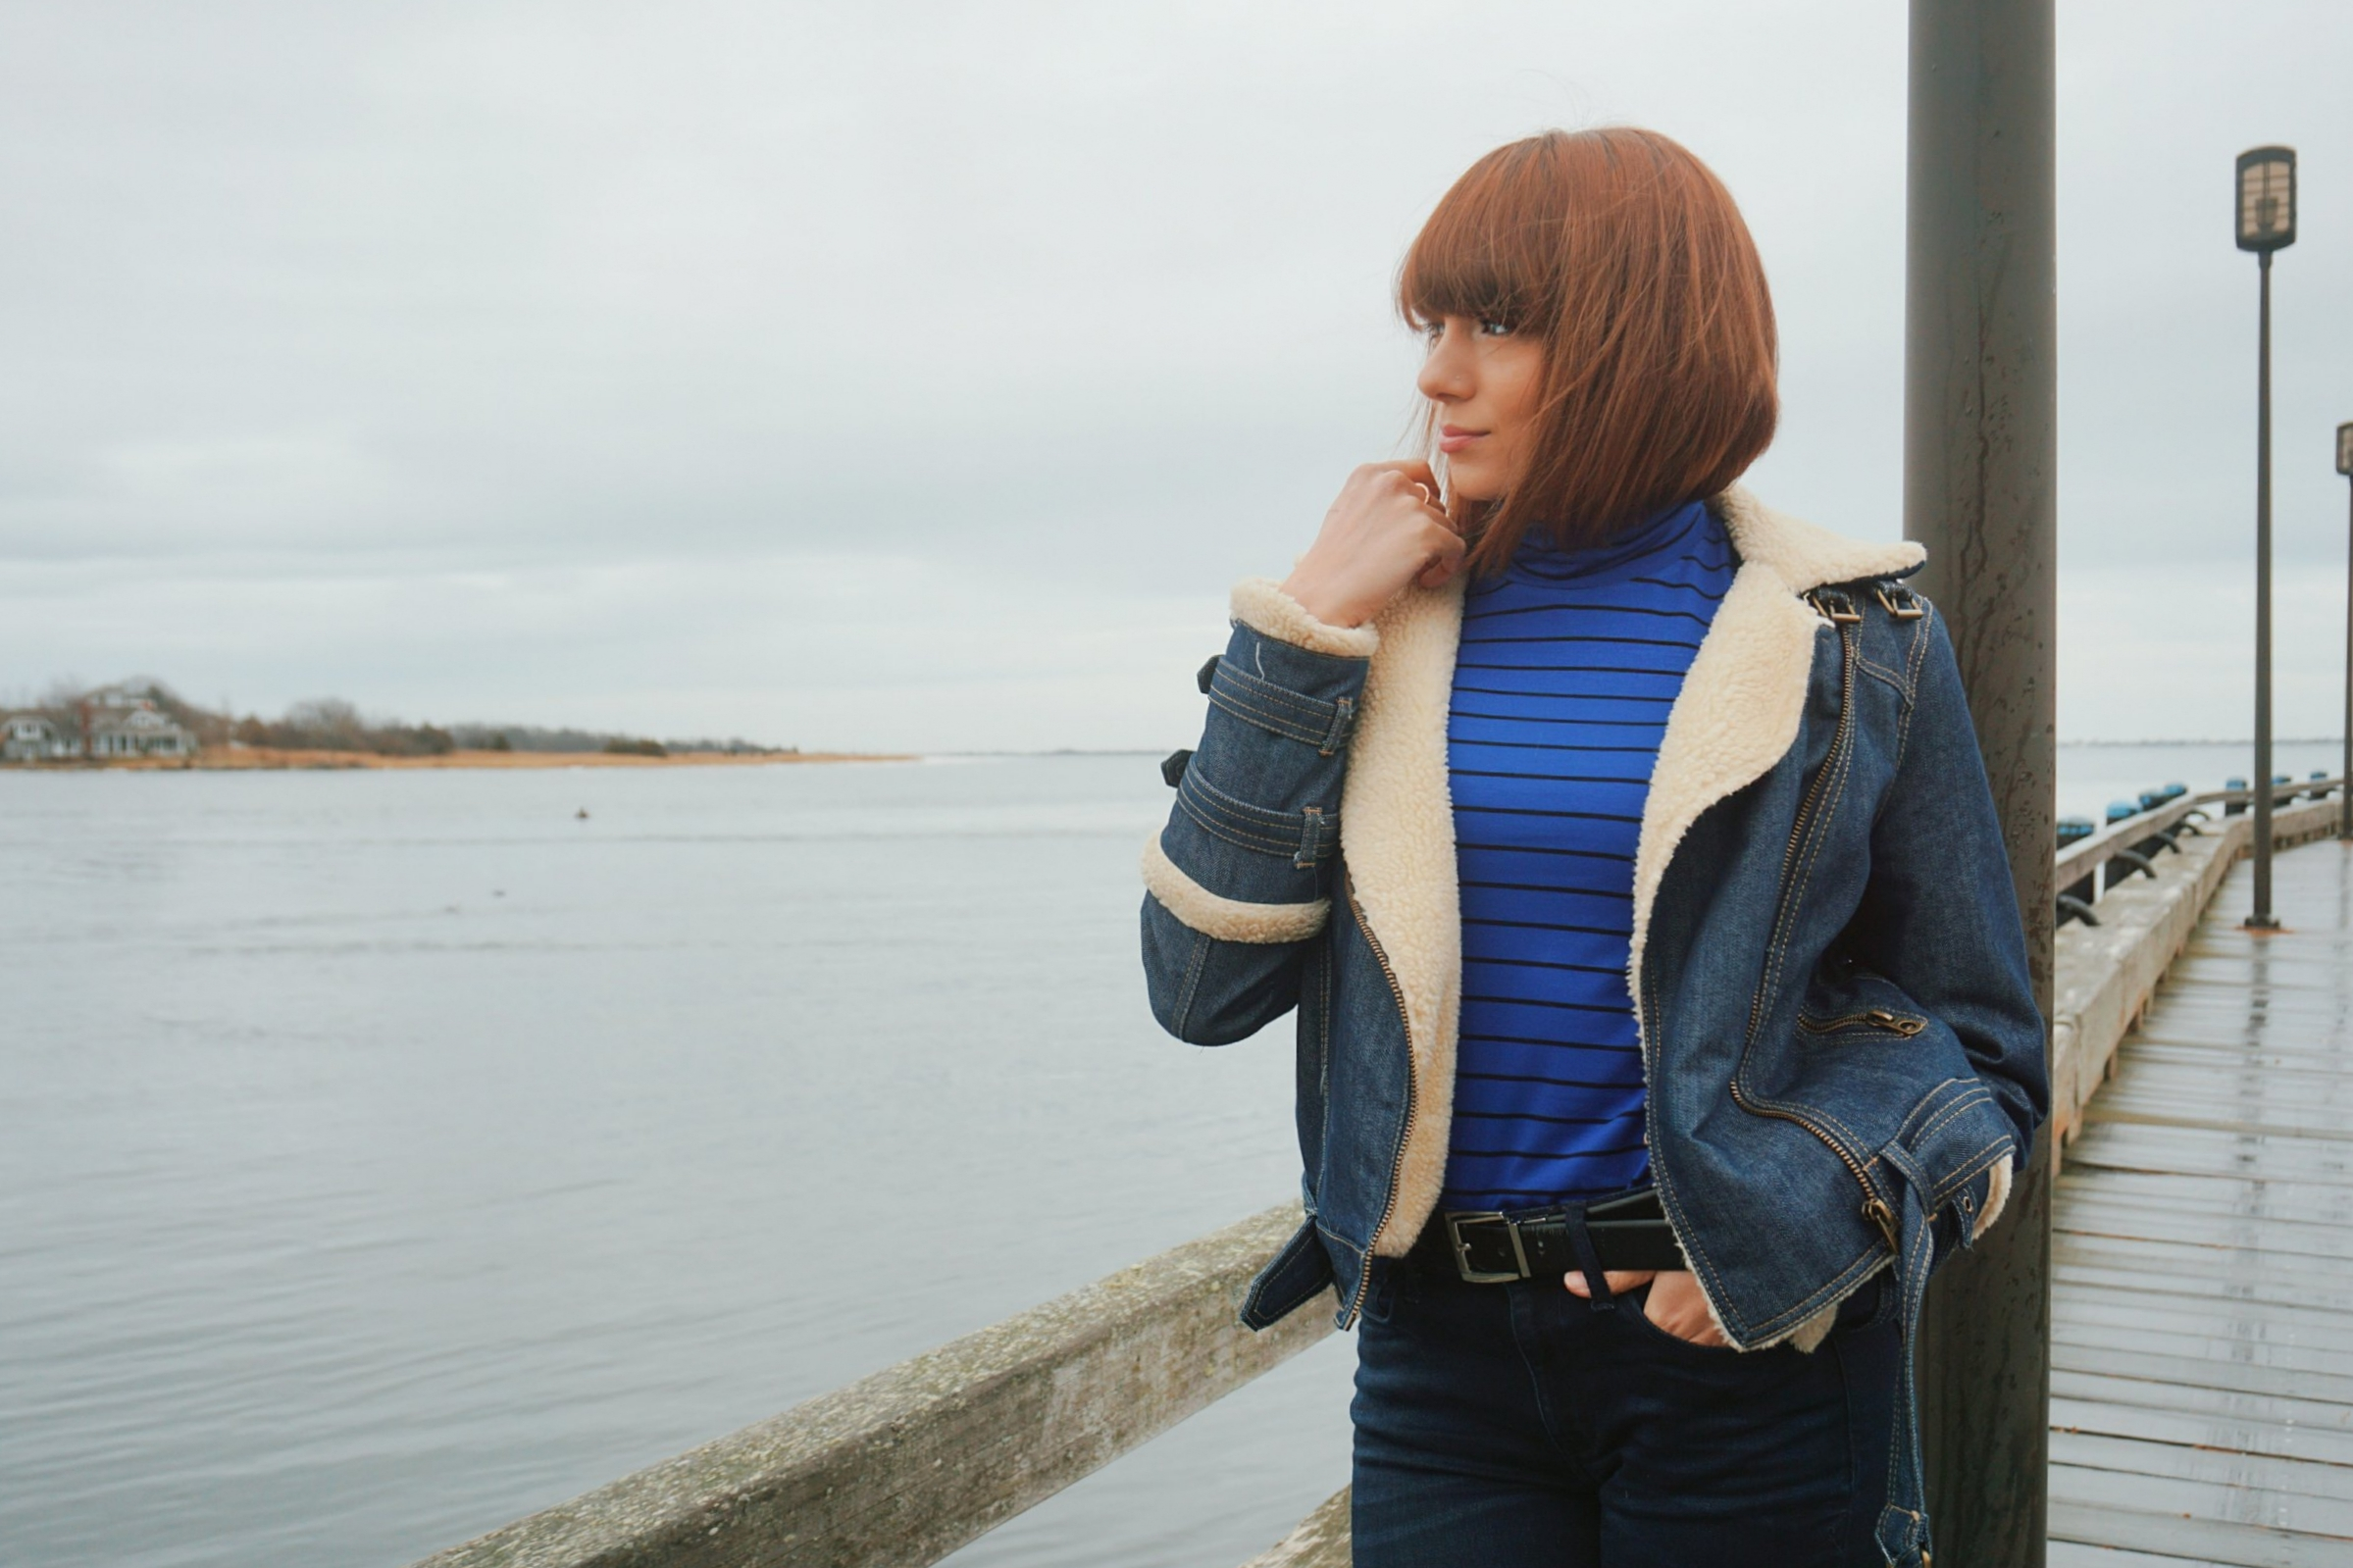 A blogger looking at the ocean, and wearing winter denim jacket, blue turtleneck, and jeans.